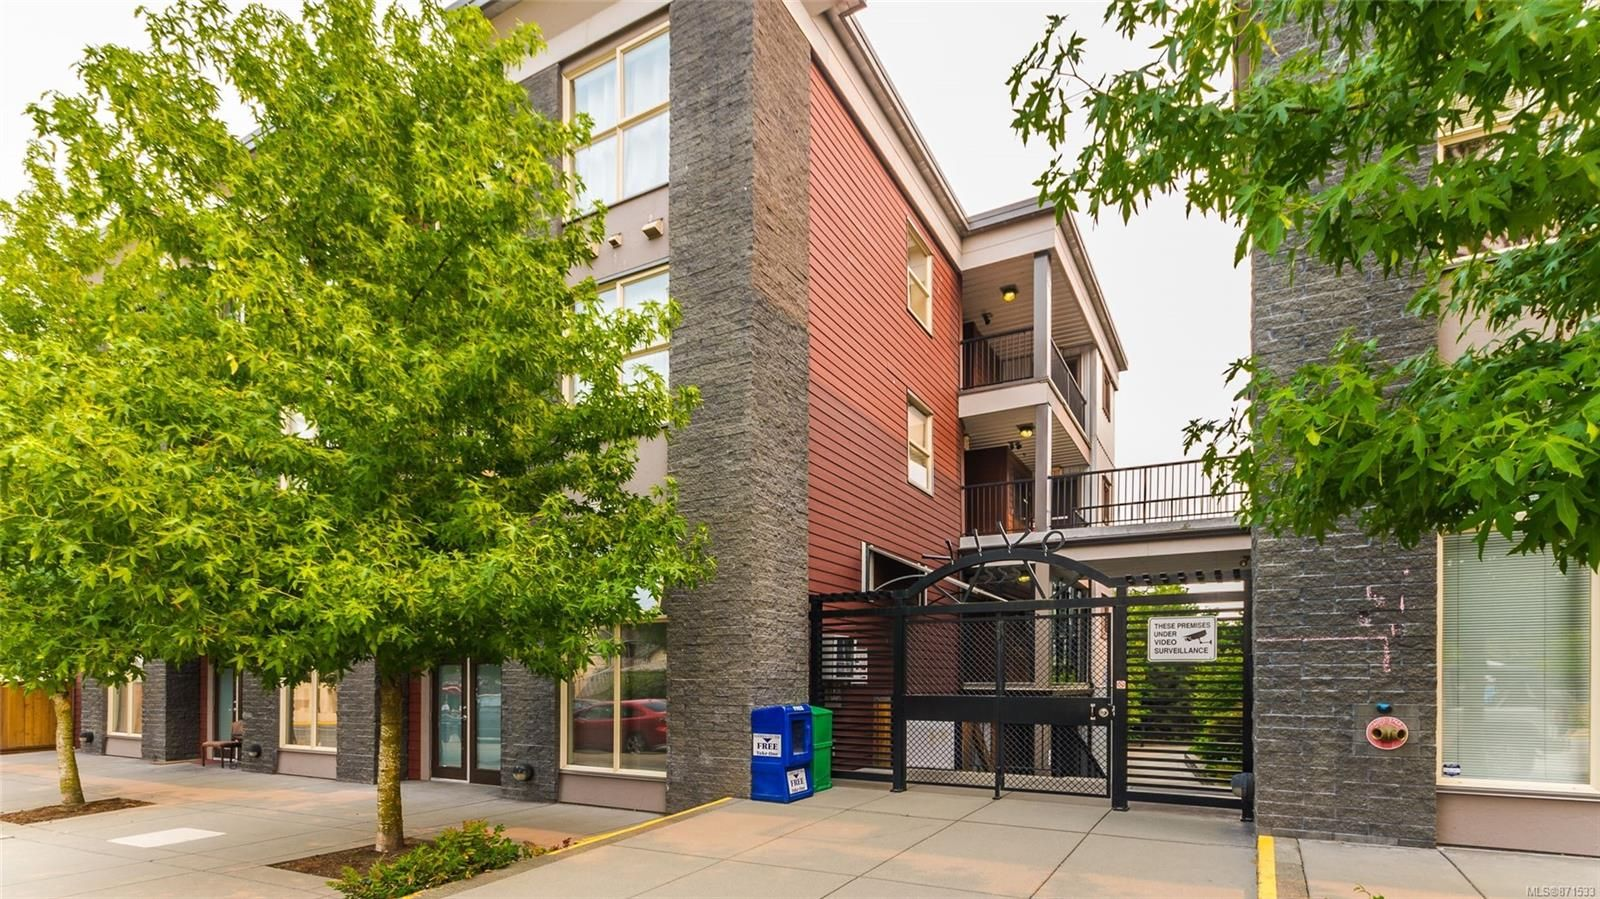 Main Photo: 324 555 Franklyn St in : Na Old City Condo for sale (Nanaimo)  : MLS®# 871533